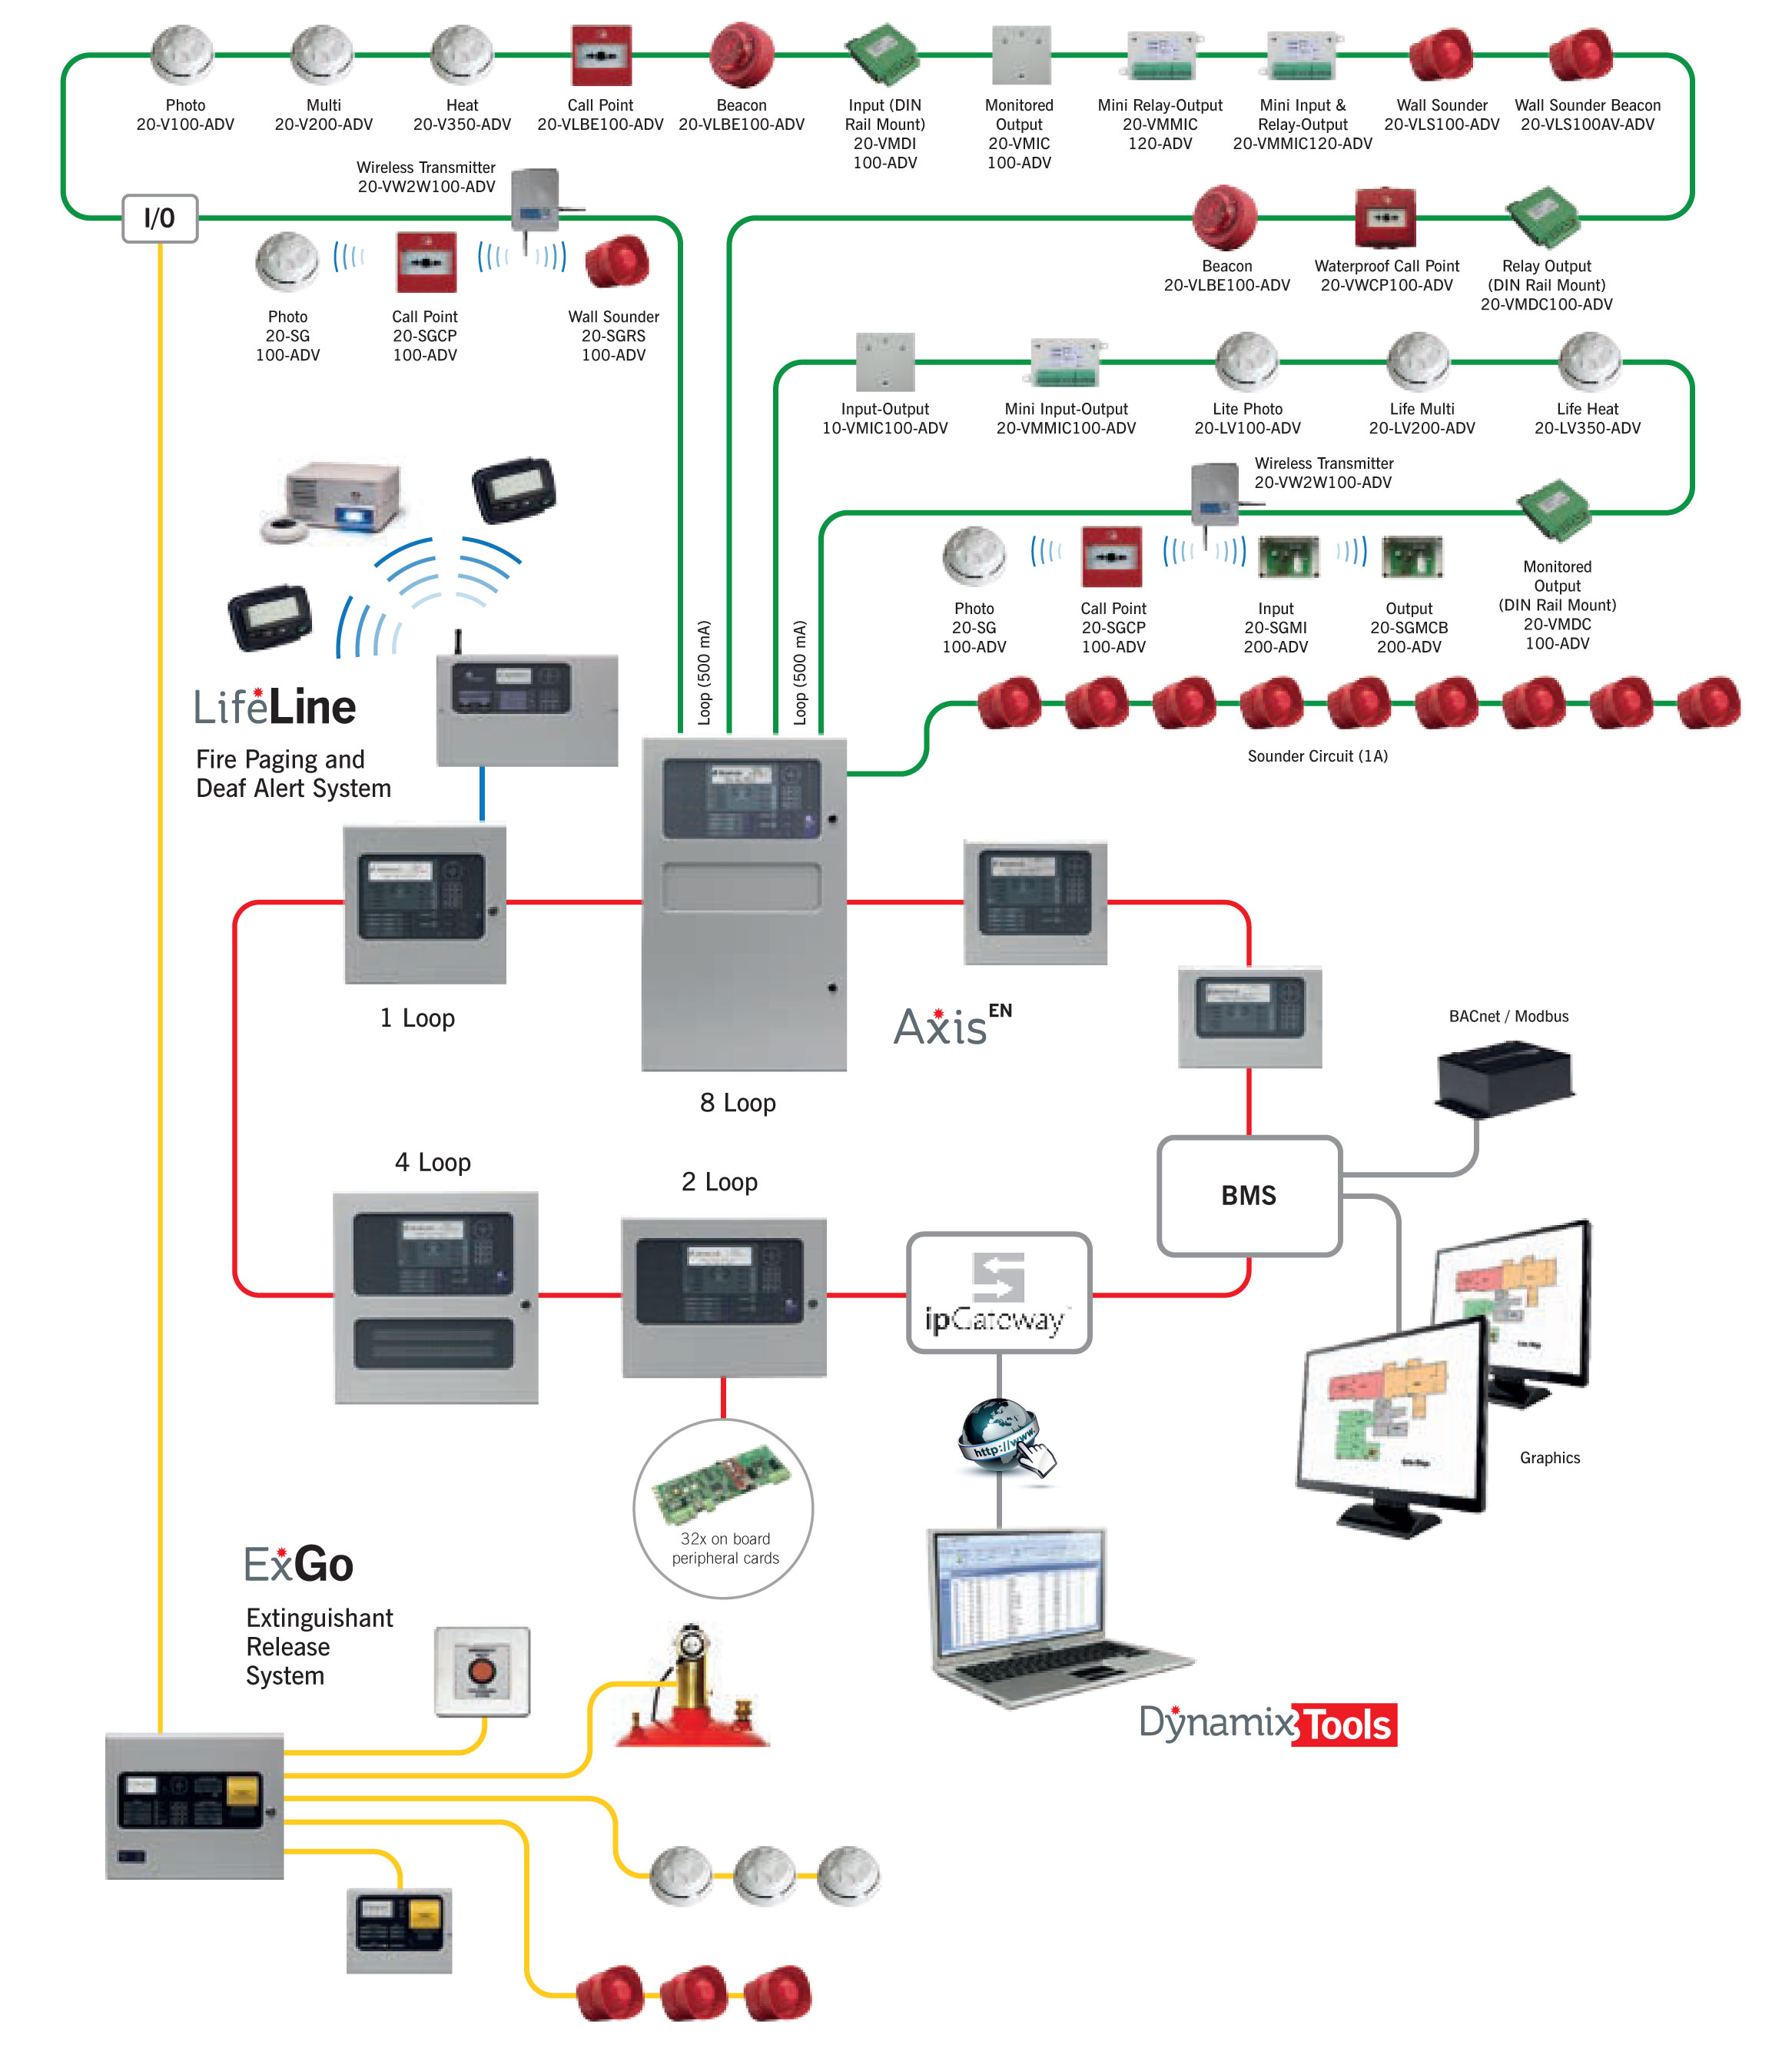 Wiring Diagram For Fire Alarm System Wiring Diagram And in addition FireAlarmPanelGateway as well Installing Fire Alarm System further Watch also Graphicannunciators. on simplex fire alarm systems